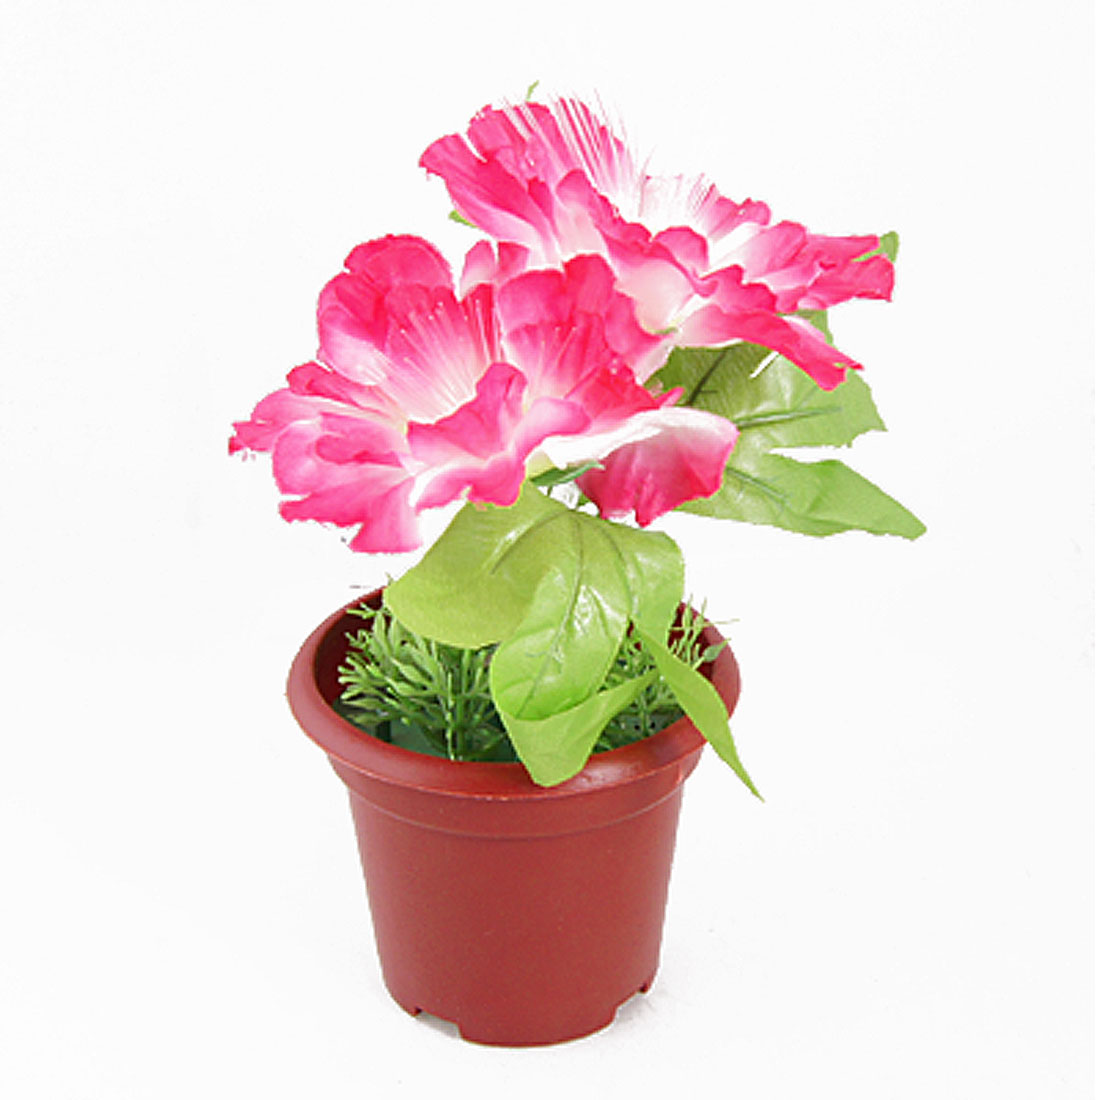 Home Plastic Pot Fuchsia White Flower Flashlight Lamp Desktop Decor